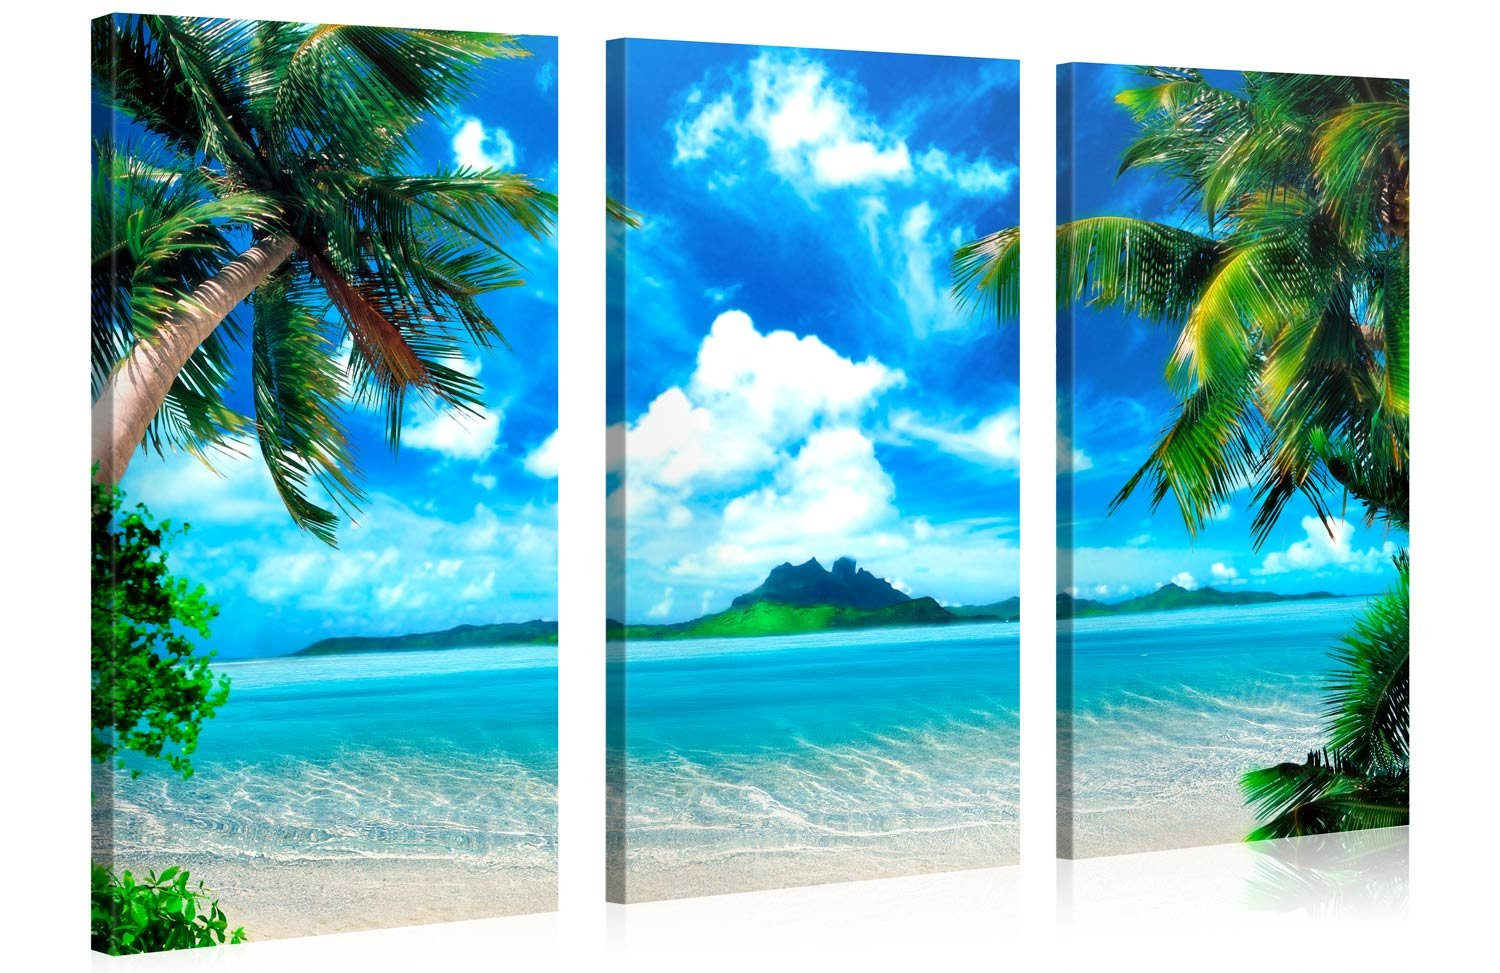 8f76e4ac514 Large Canvas Print Wall Art – CARIBBEAN ISLAND – 48x30 in (3 pcs) Beach  Landscape Canvas Picture Stretched On A Wooden Frame – Giclee Canvas  Printing ...